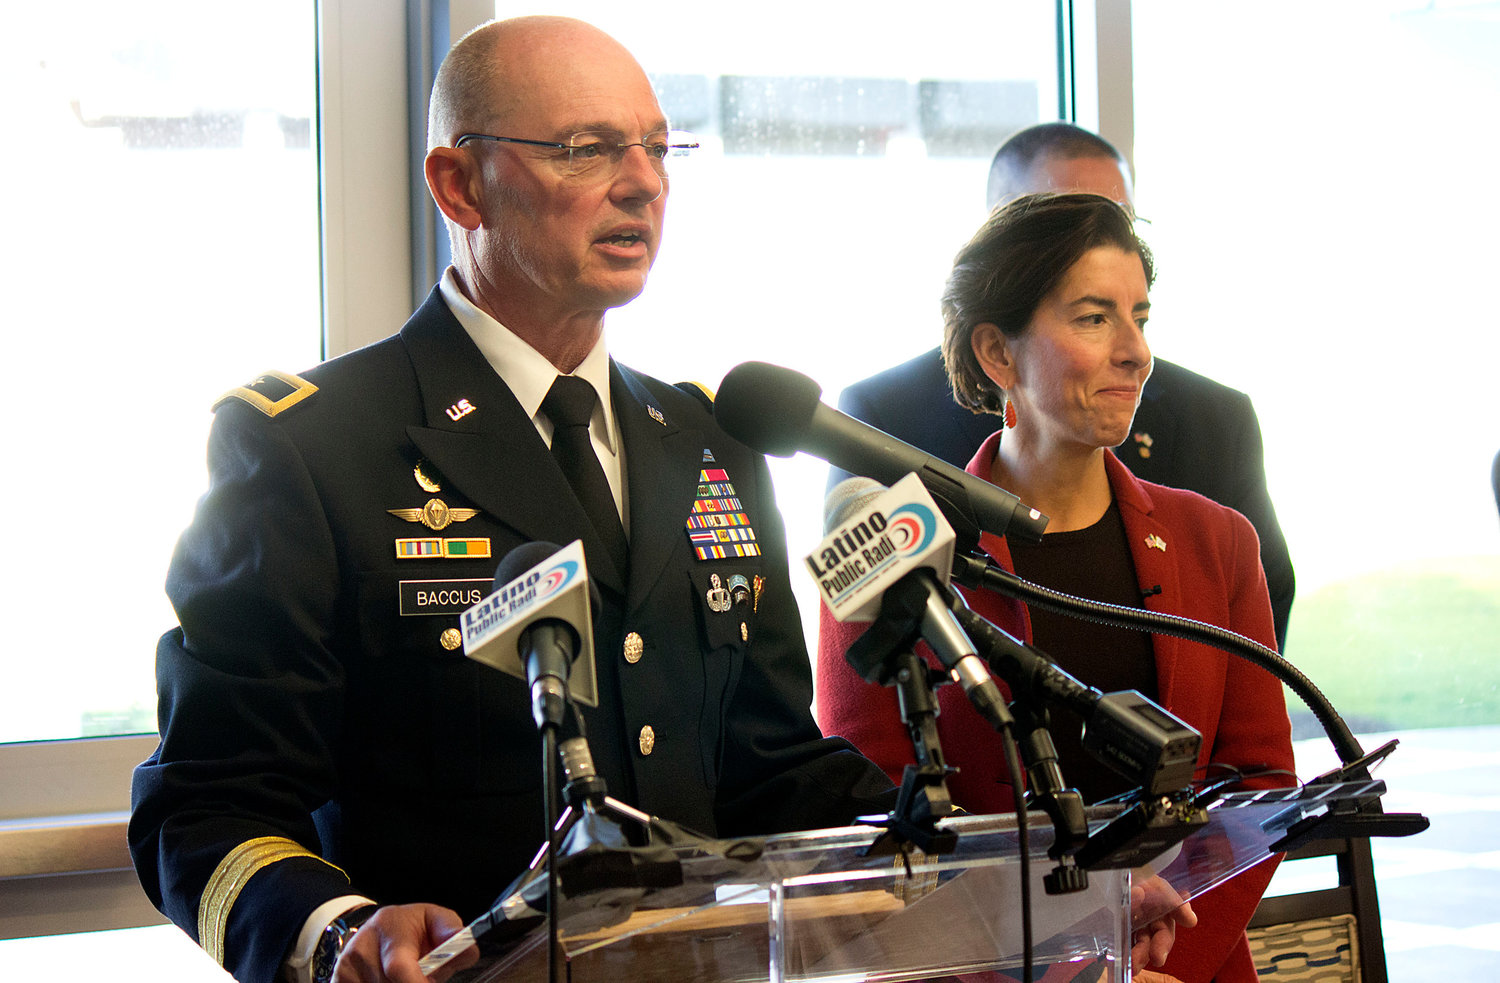 Retired Army Gen. Rick Baccus and Gov. Gina Raimondo during happier times, at the opening of the new Rhode Island Veterans Home on Veterans' Day in 2017.